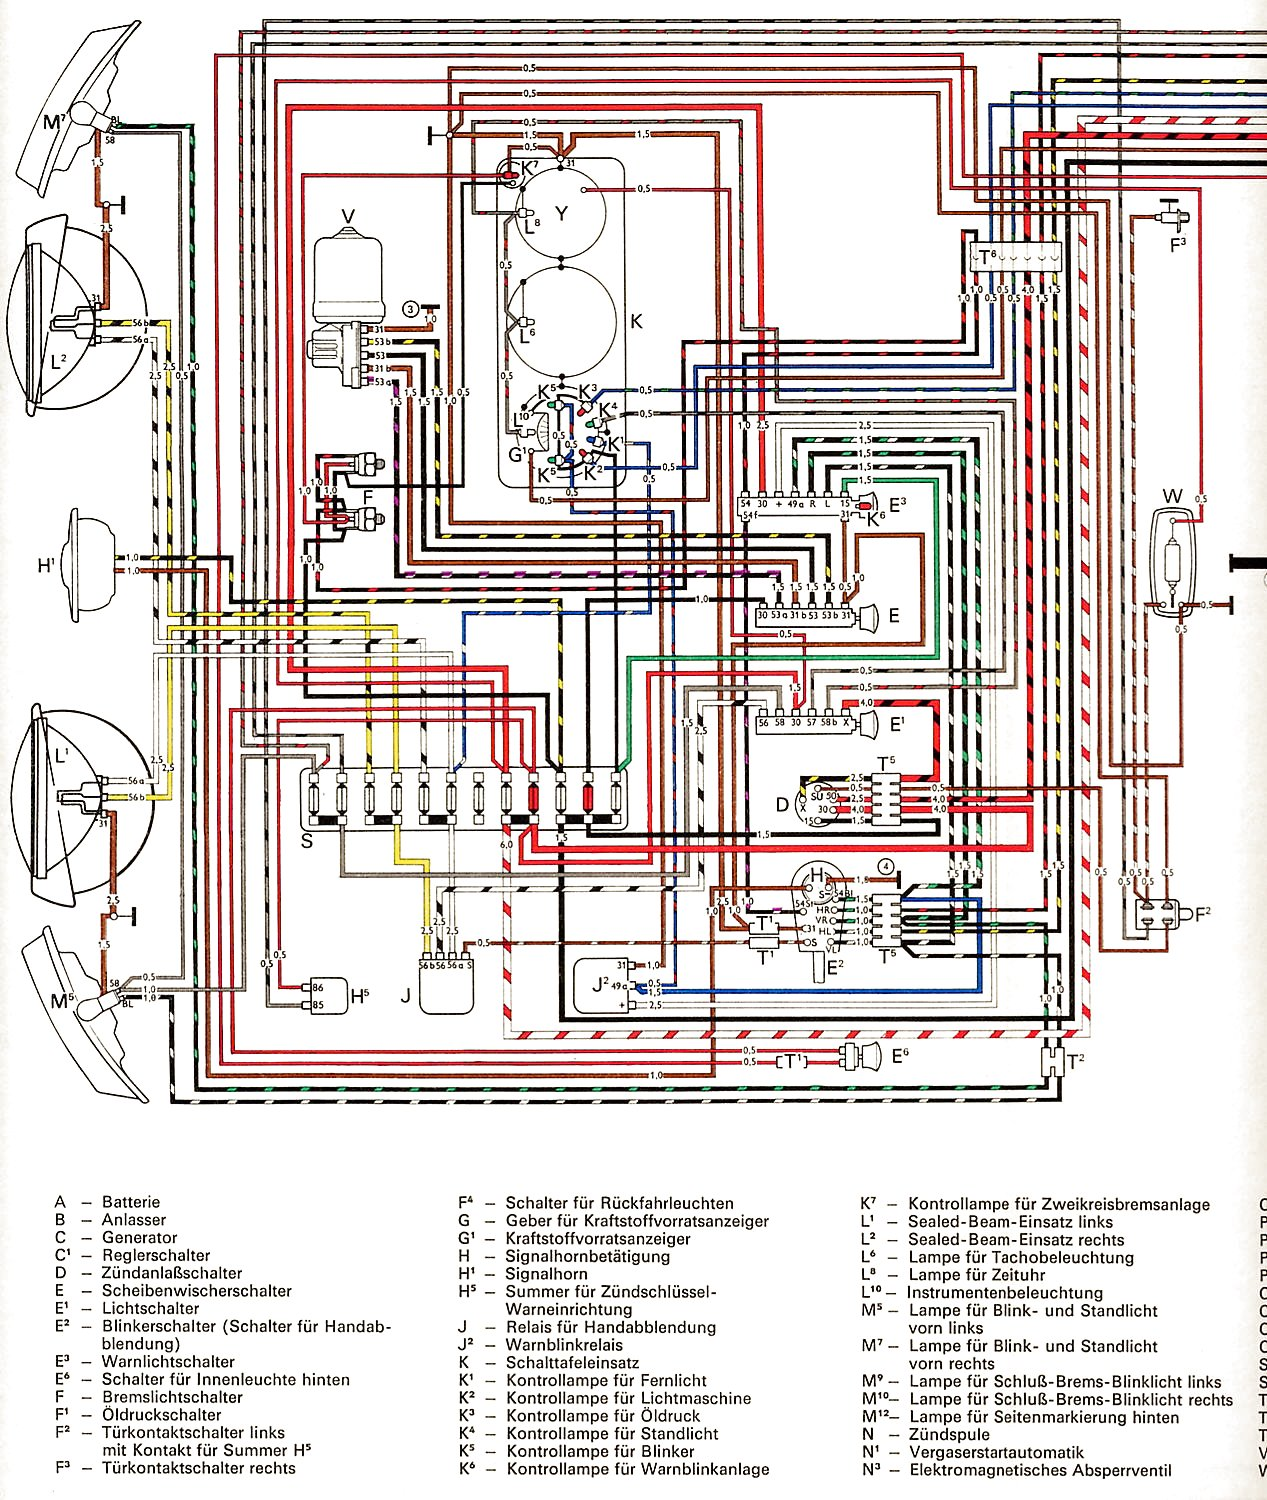 1977 vw wiring diagram wiring diagram golvintagebus com vw bus (and other) wiring diagrams 1977 vw bug wiring diagram 1977 vw wiring diagram